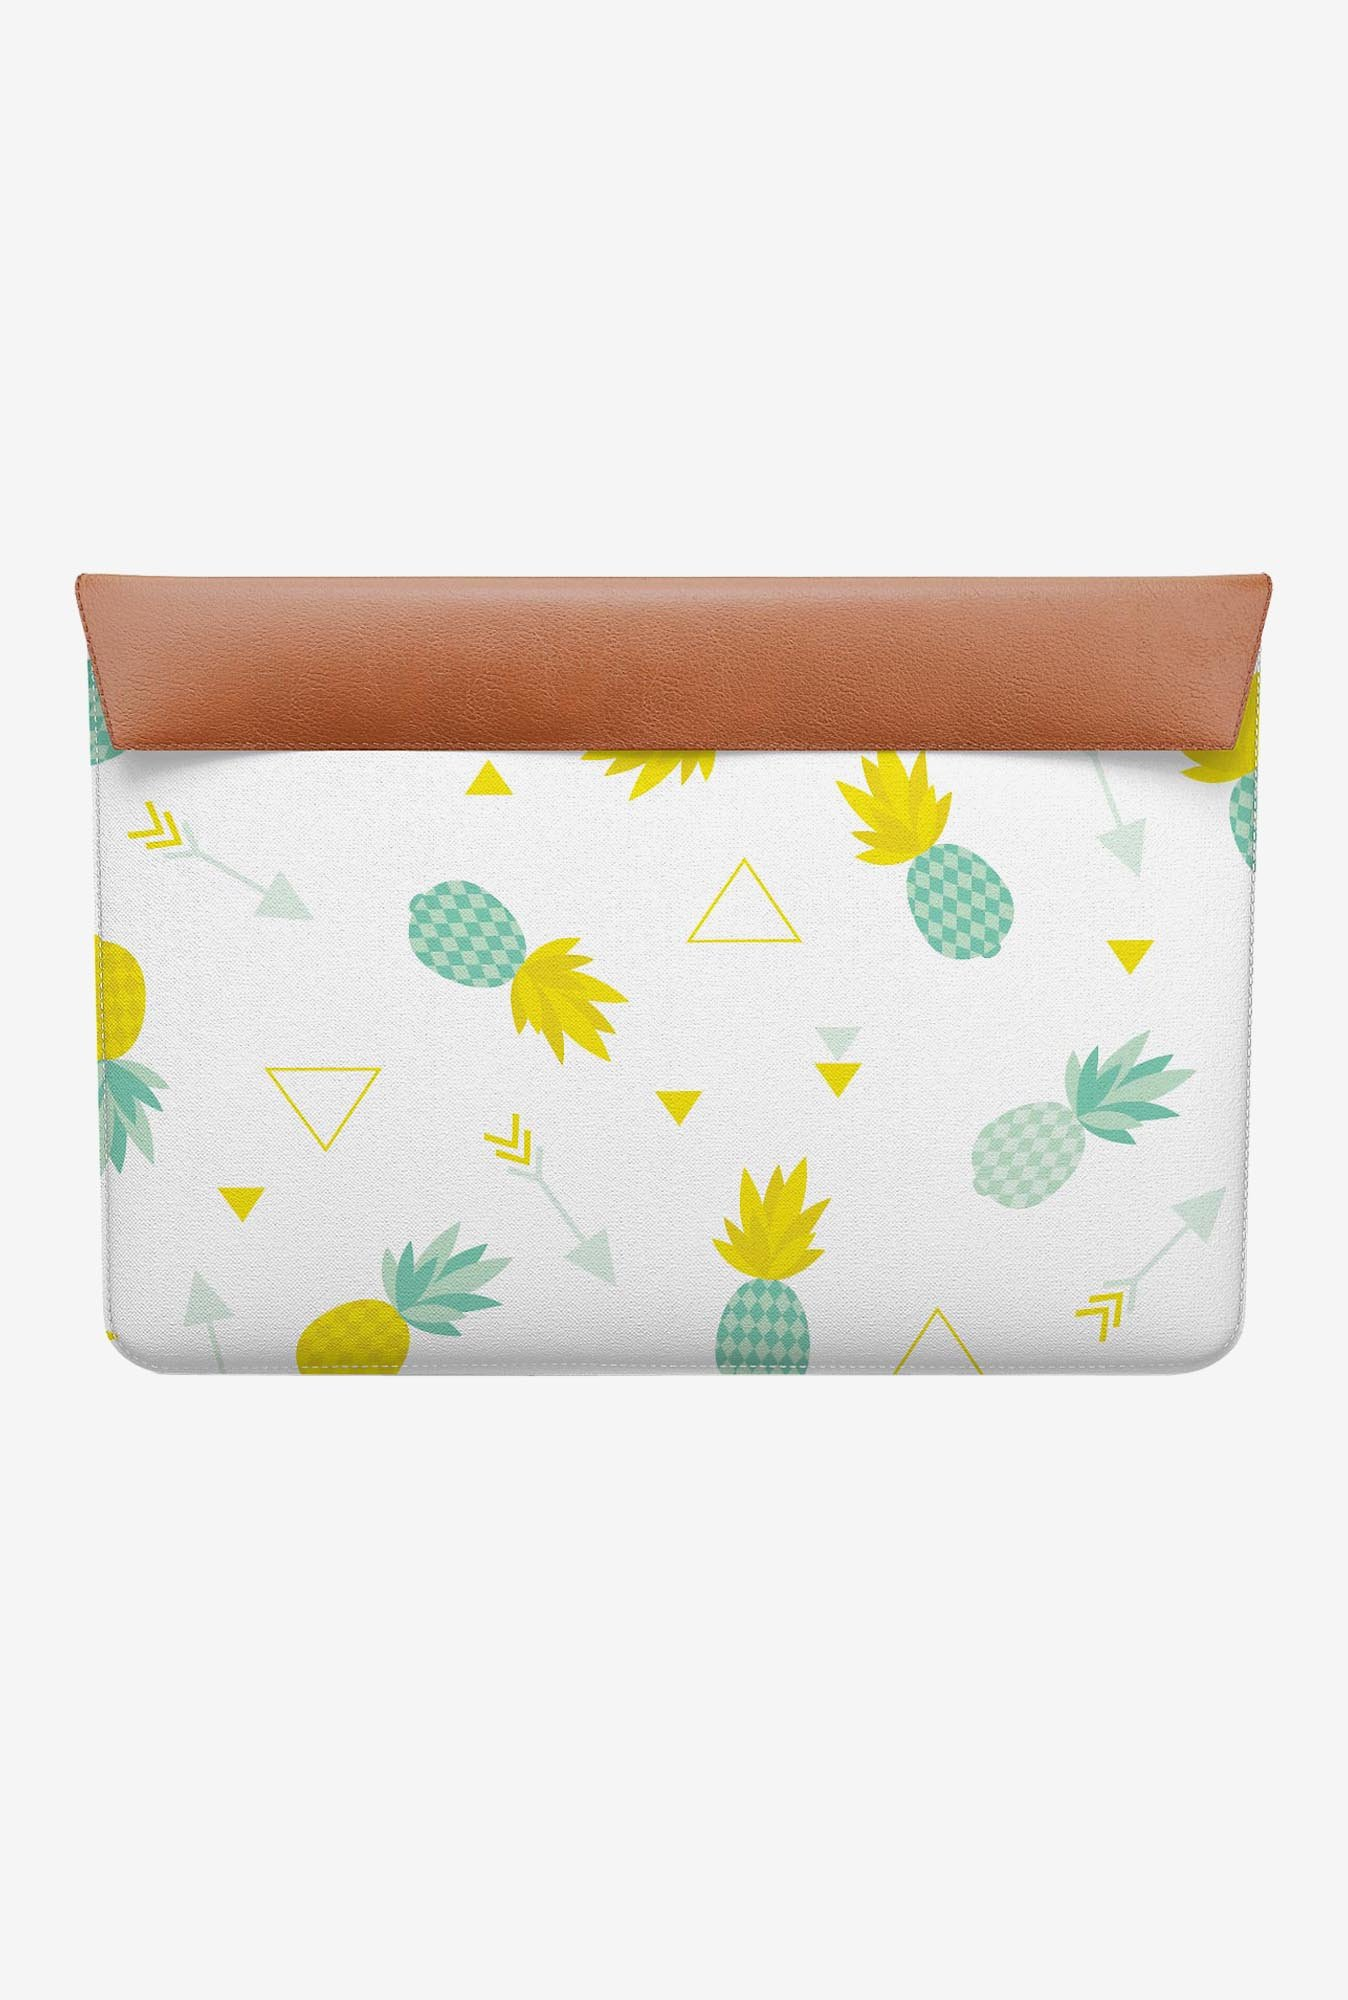 "DailyObjects Pineapple MacBook Air 11"" Envelope Sleeve"